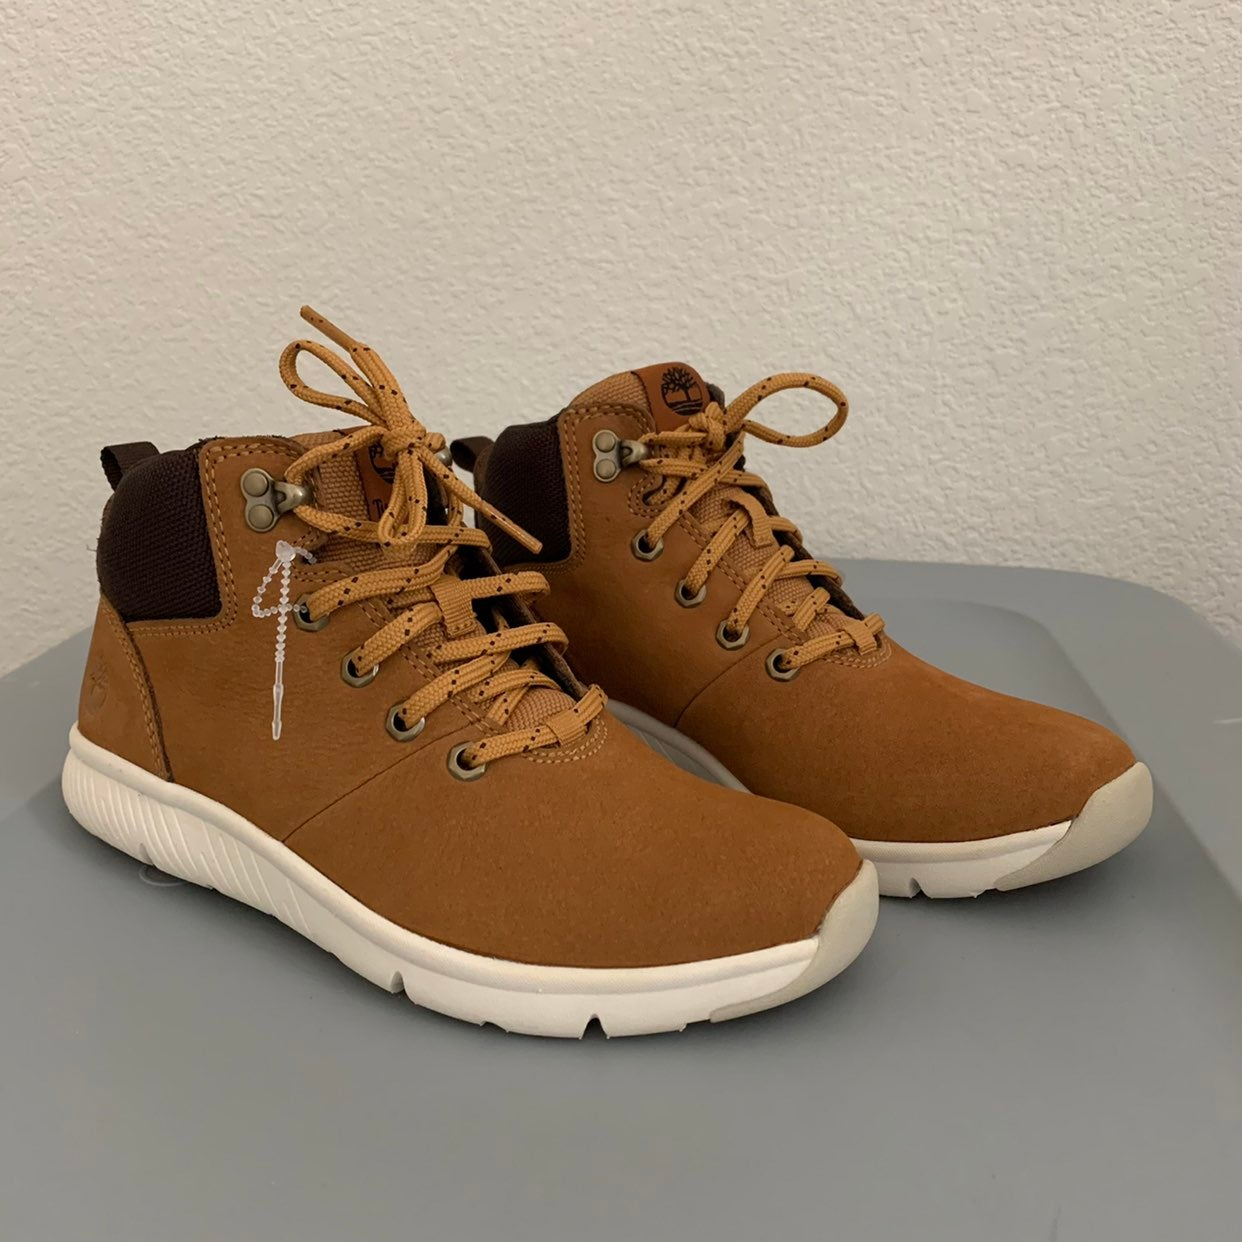 Timberland Boltero Boots NEW Youth 3